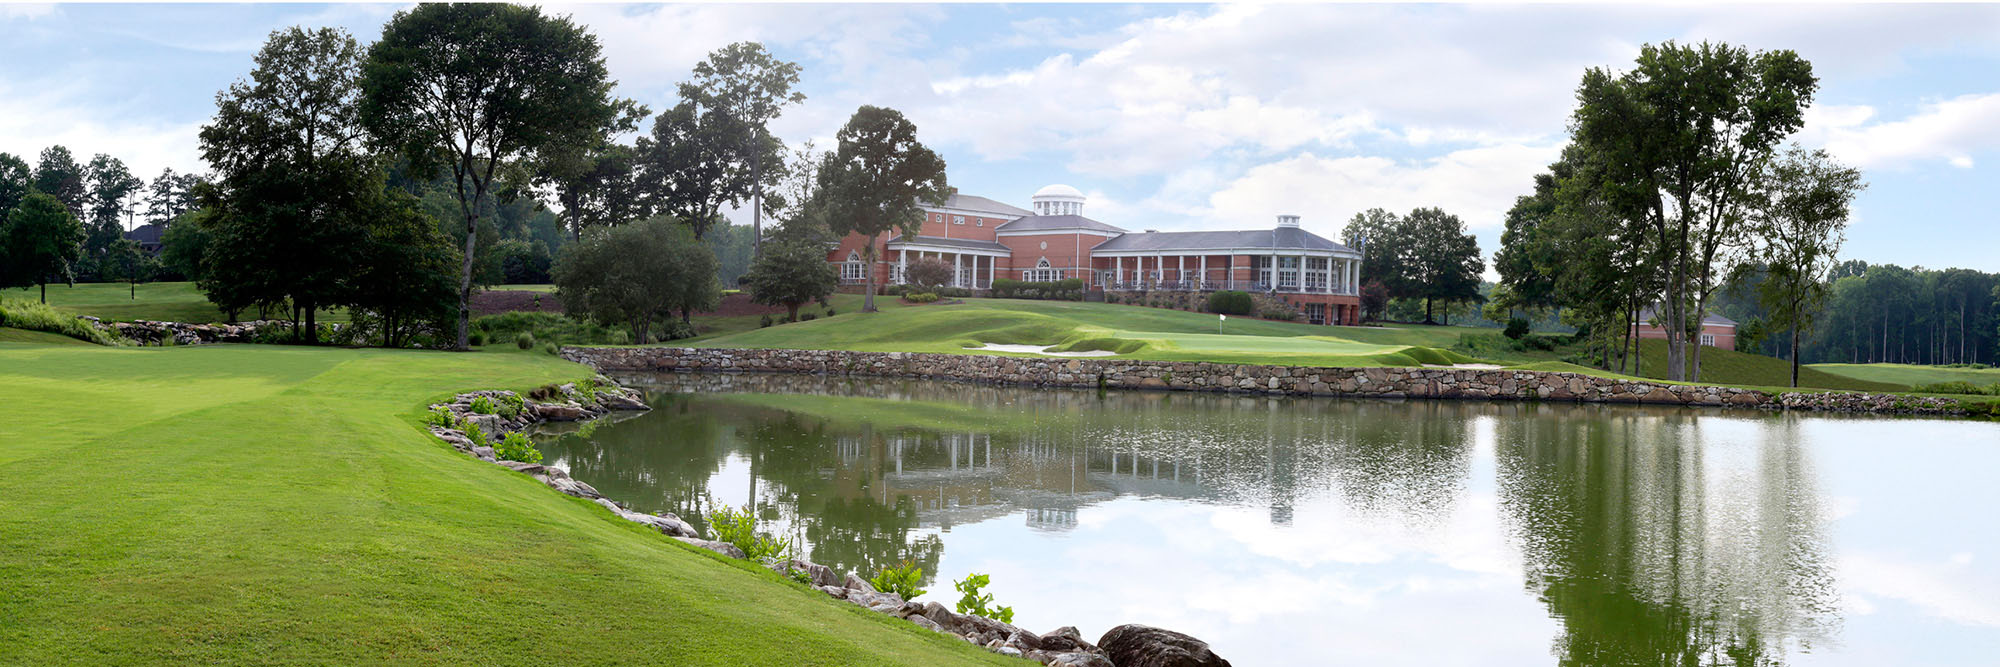 Golf Course Image - River Run Country Club No. 18